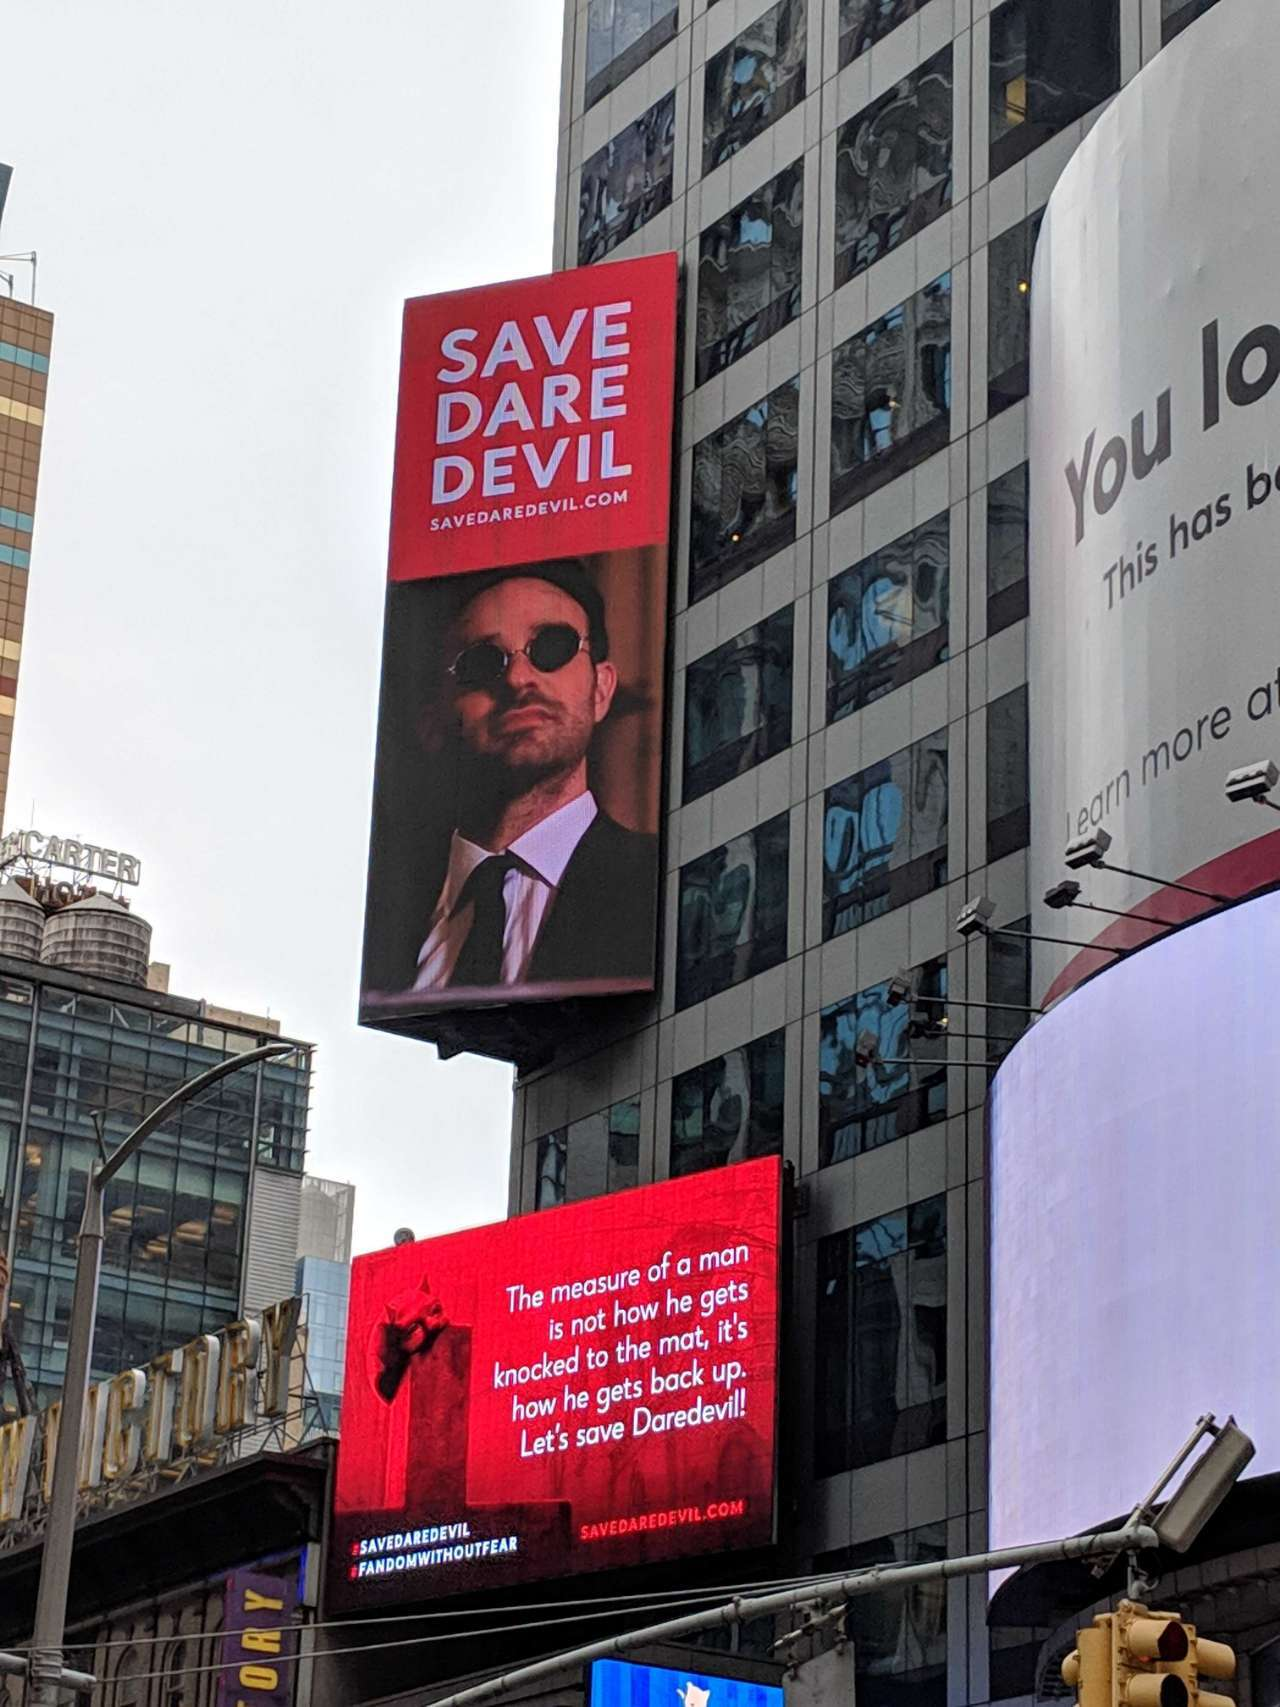 save-daredevil-billboard3